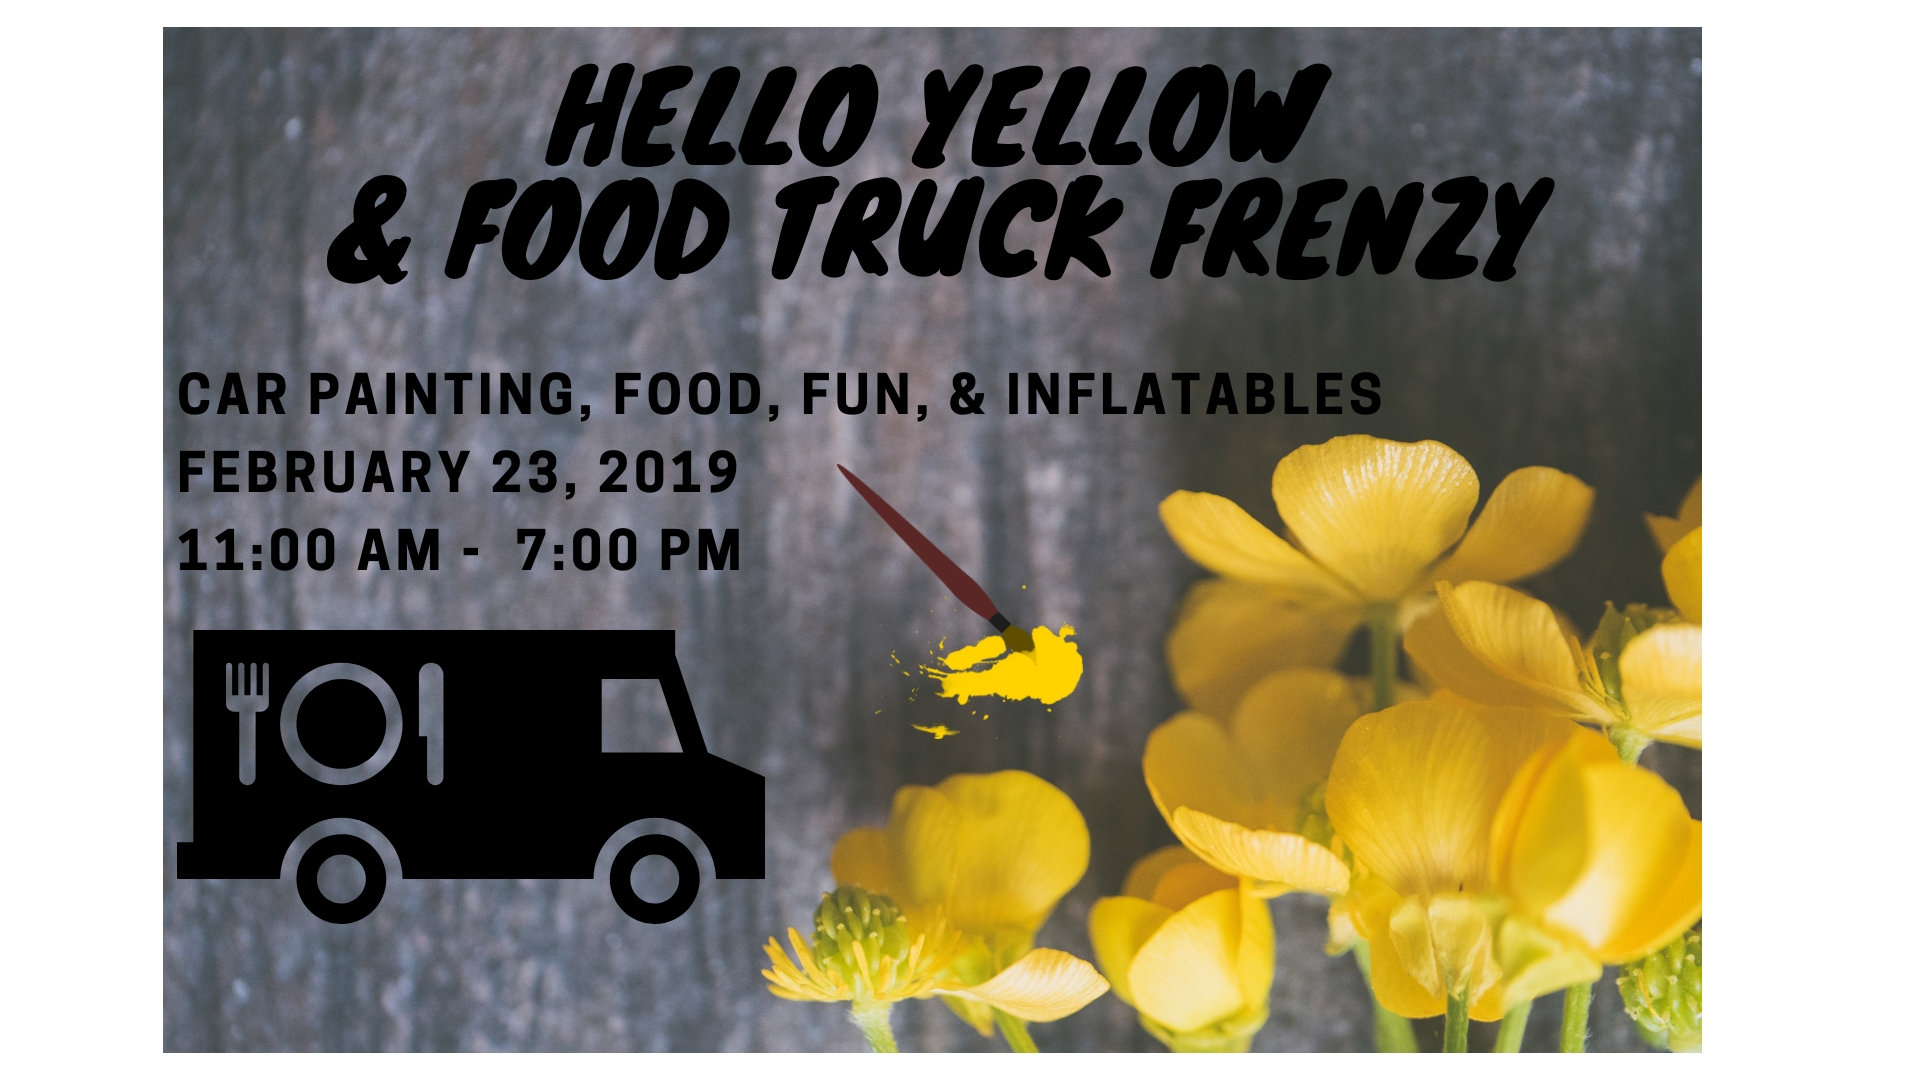 Hello Yellow & Food Truck Frenzy